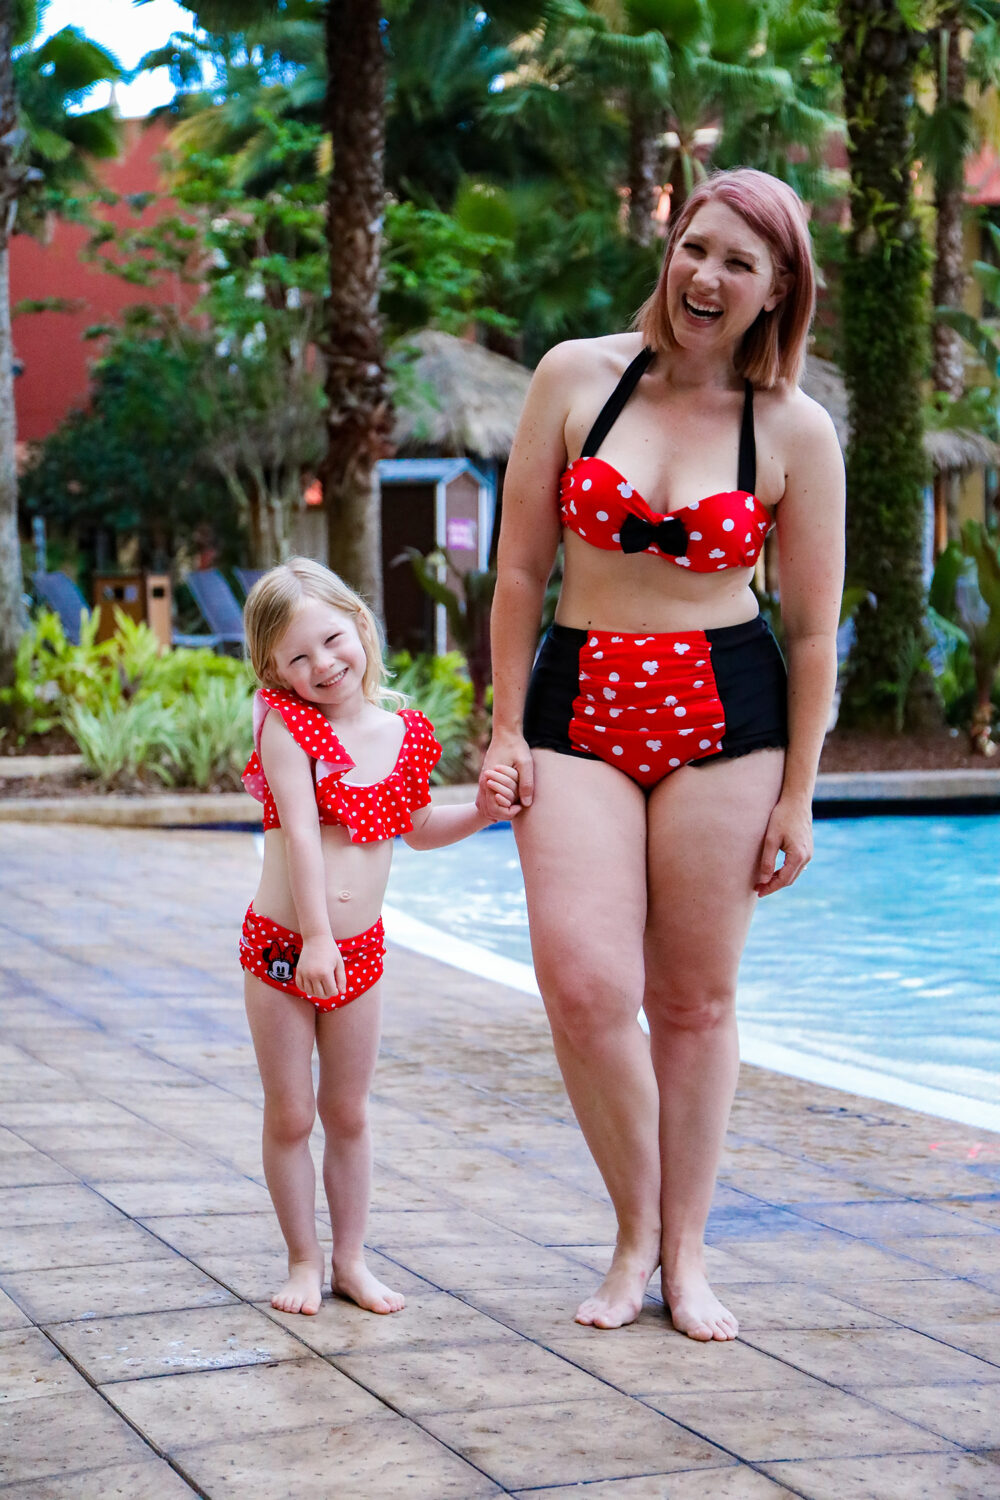 Let's rock the dots! Looking for Disney bathing suits? These are an adorable option!